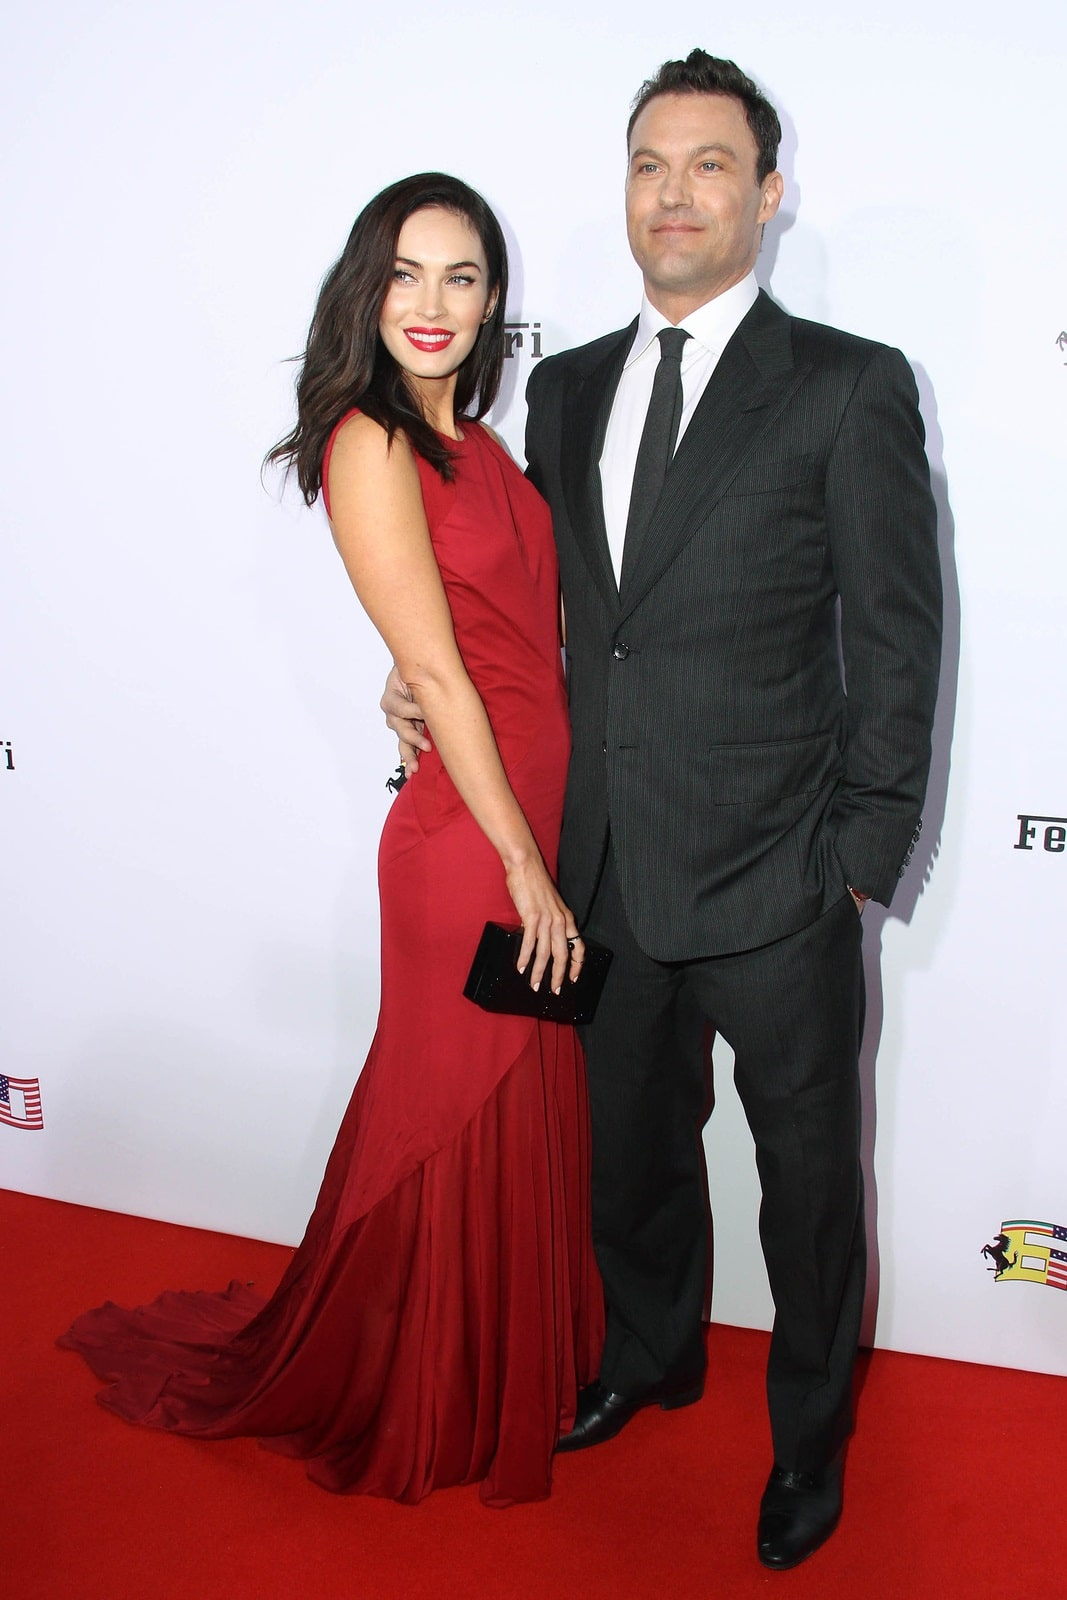 la boda secreta de megan fox